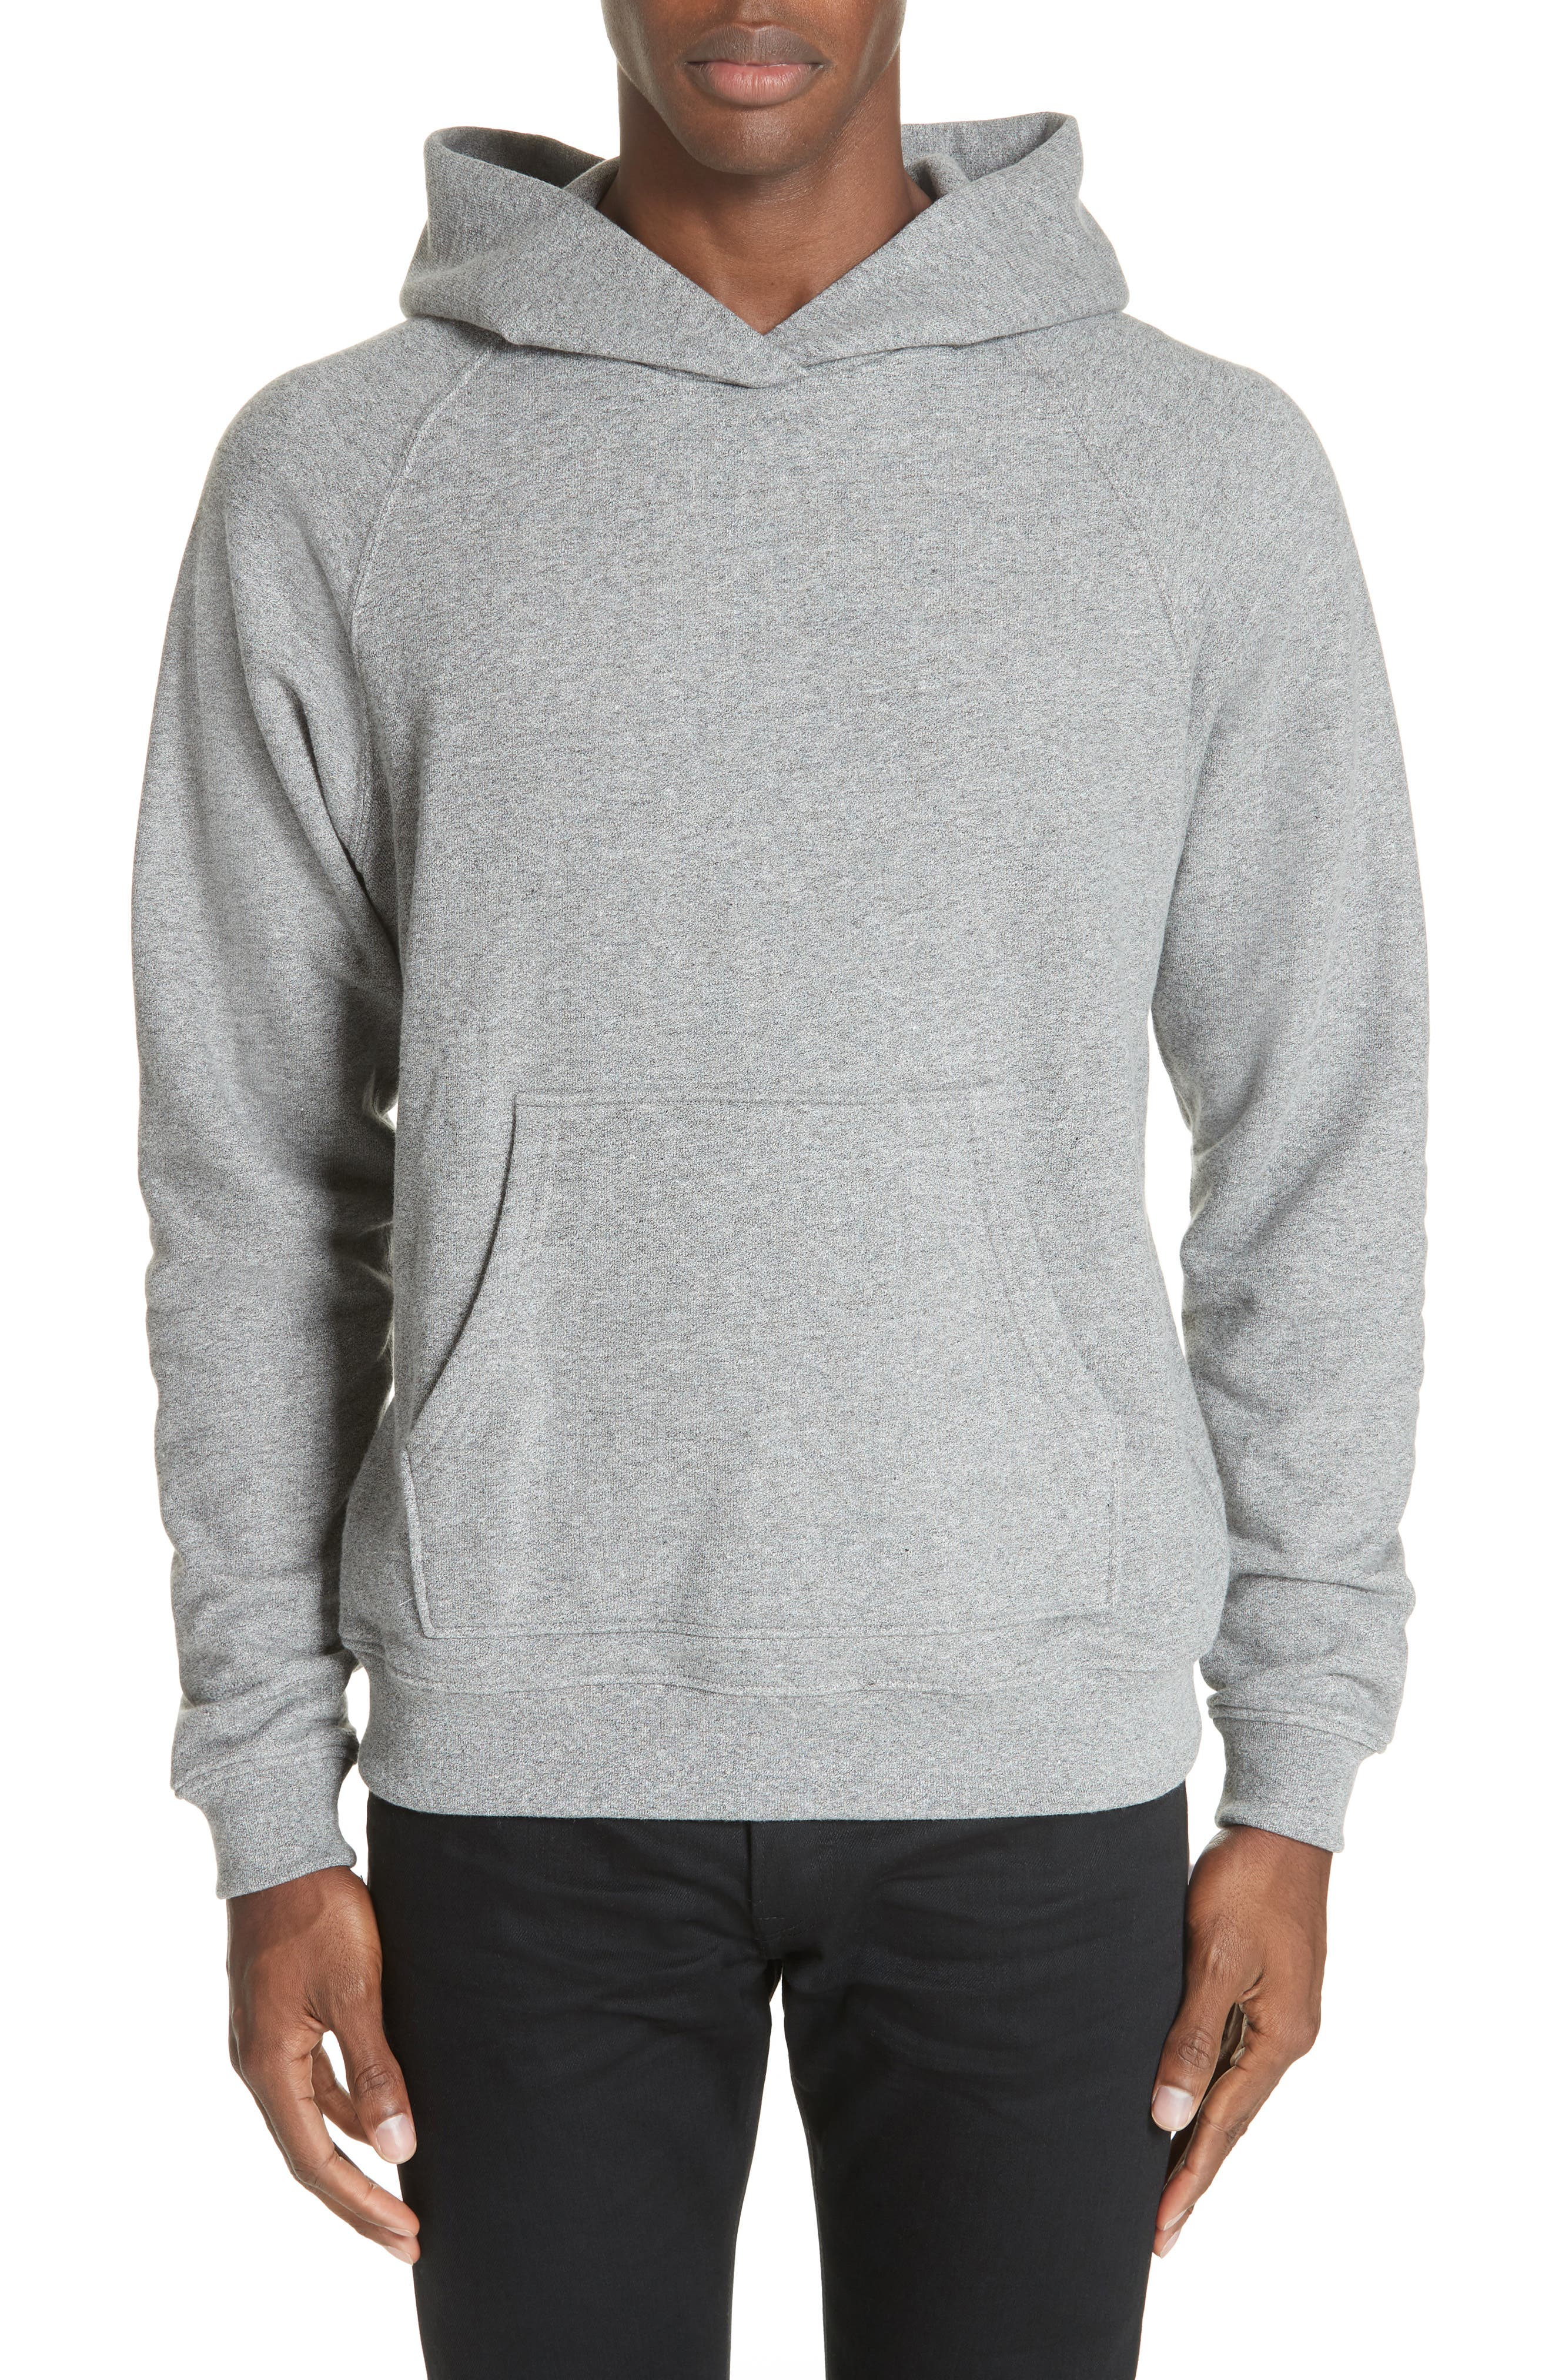 Raglan Hooded Sweatshirt,                         Main,                         color, DARK GREY